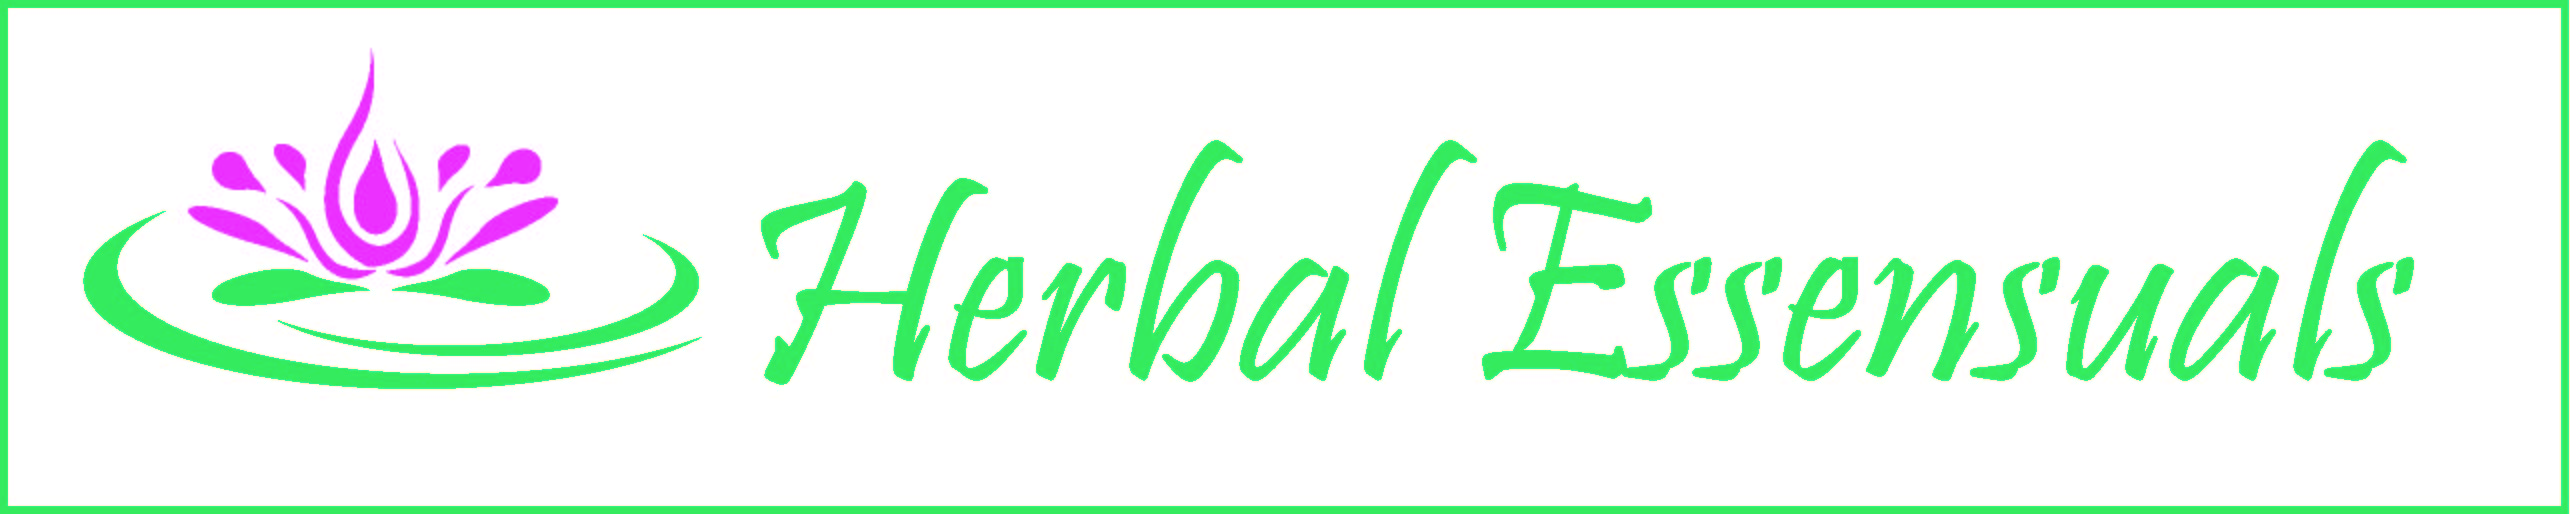 Logo Design by Laren Rabanal - Entry No. 16 in the Logo Design Contest Captivating Logo Design for Herbal Essensuals.